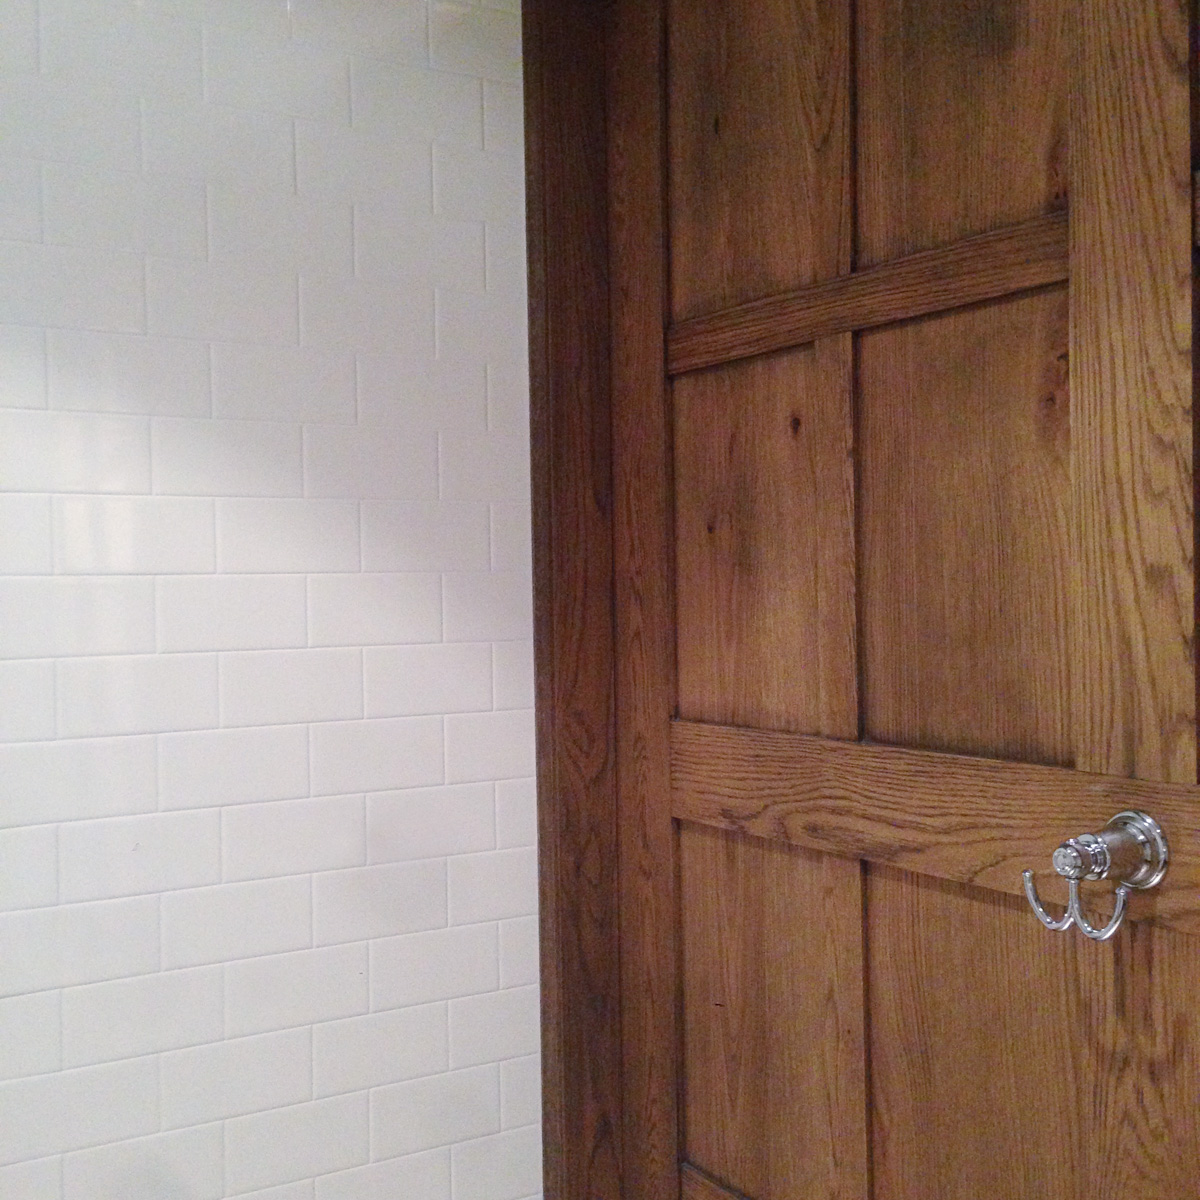 French bistro style, wood panelling, subway tile wall